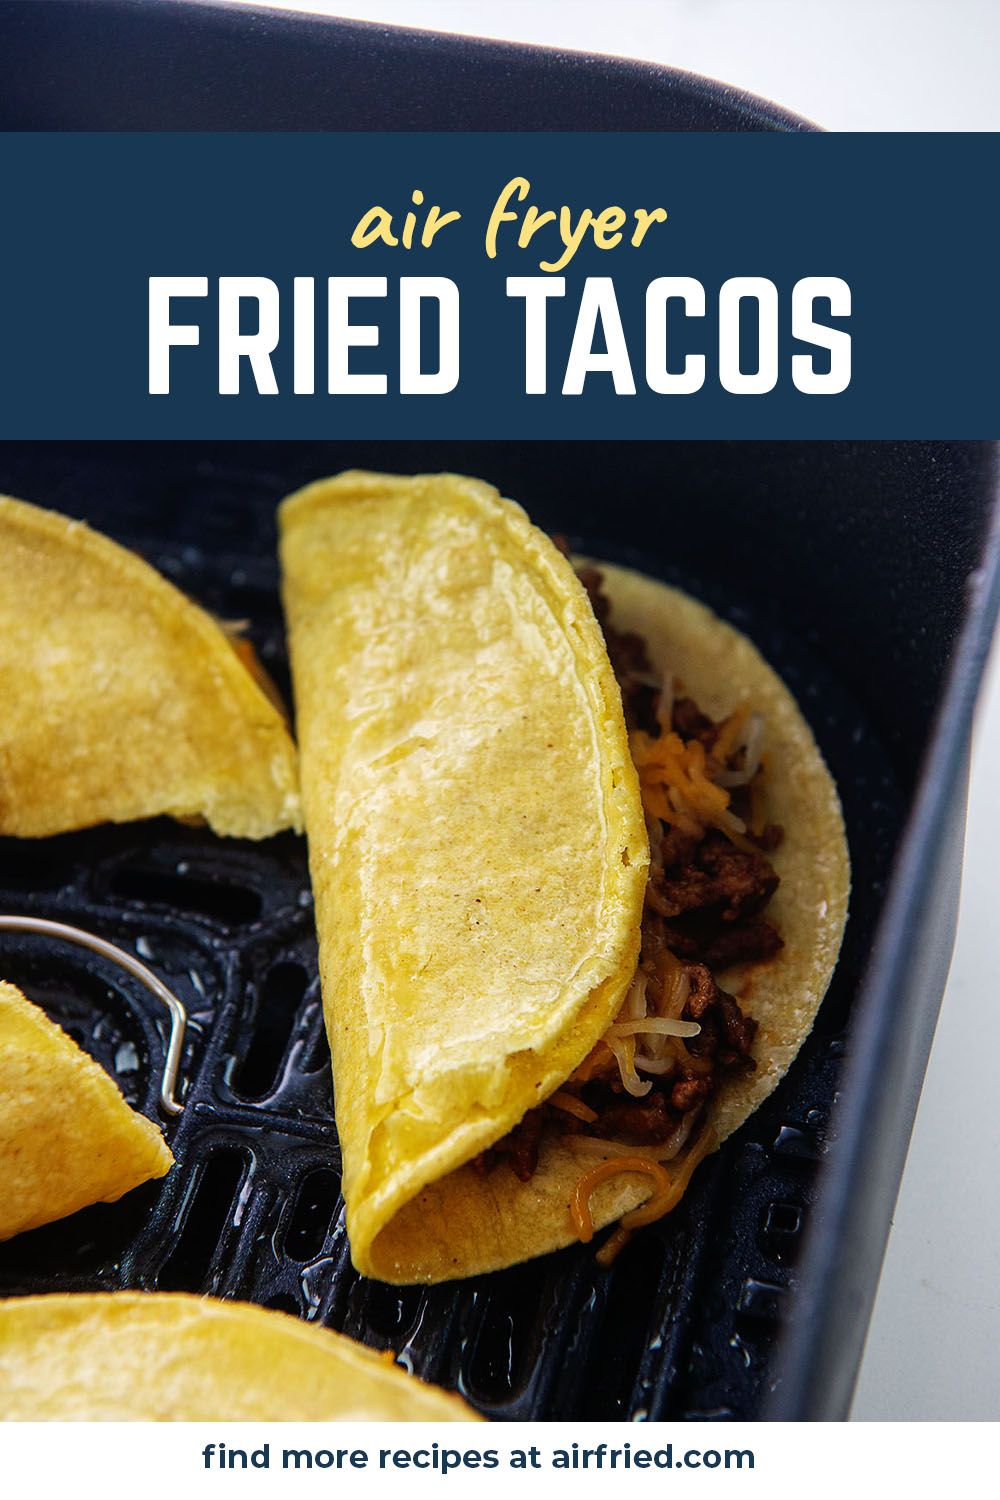 Fried tacos are so good with their crispy shells cooked alongside the beef and melted cheese!